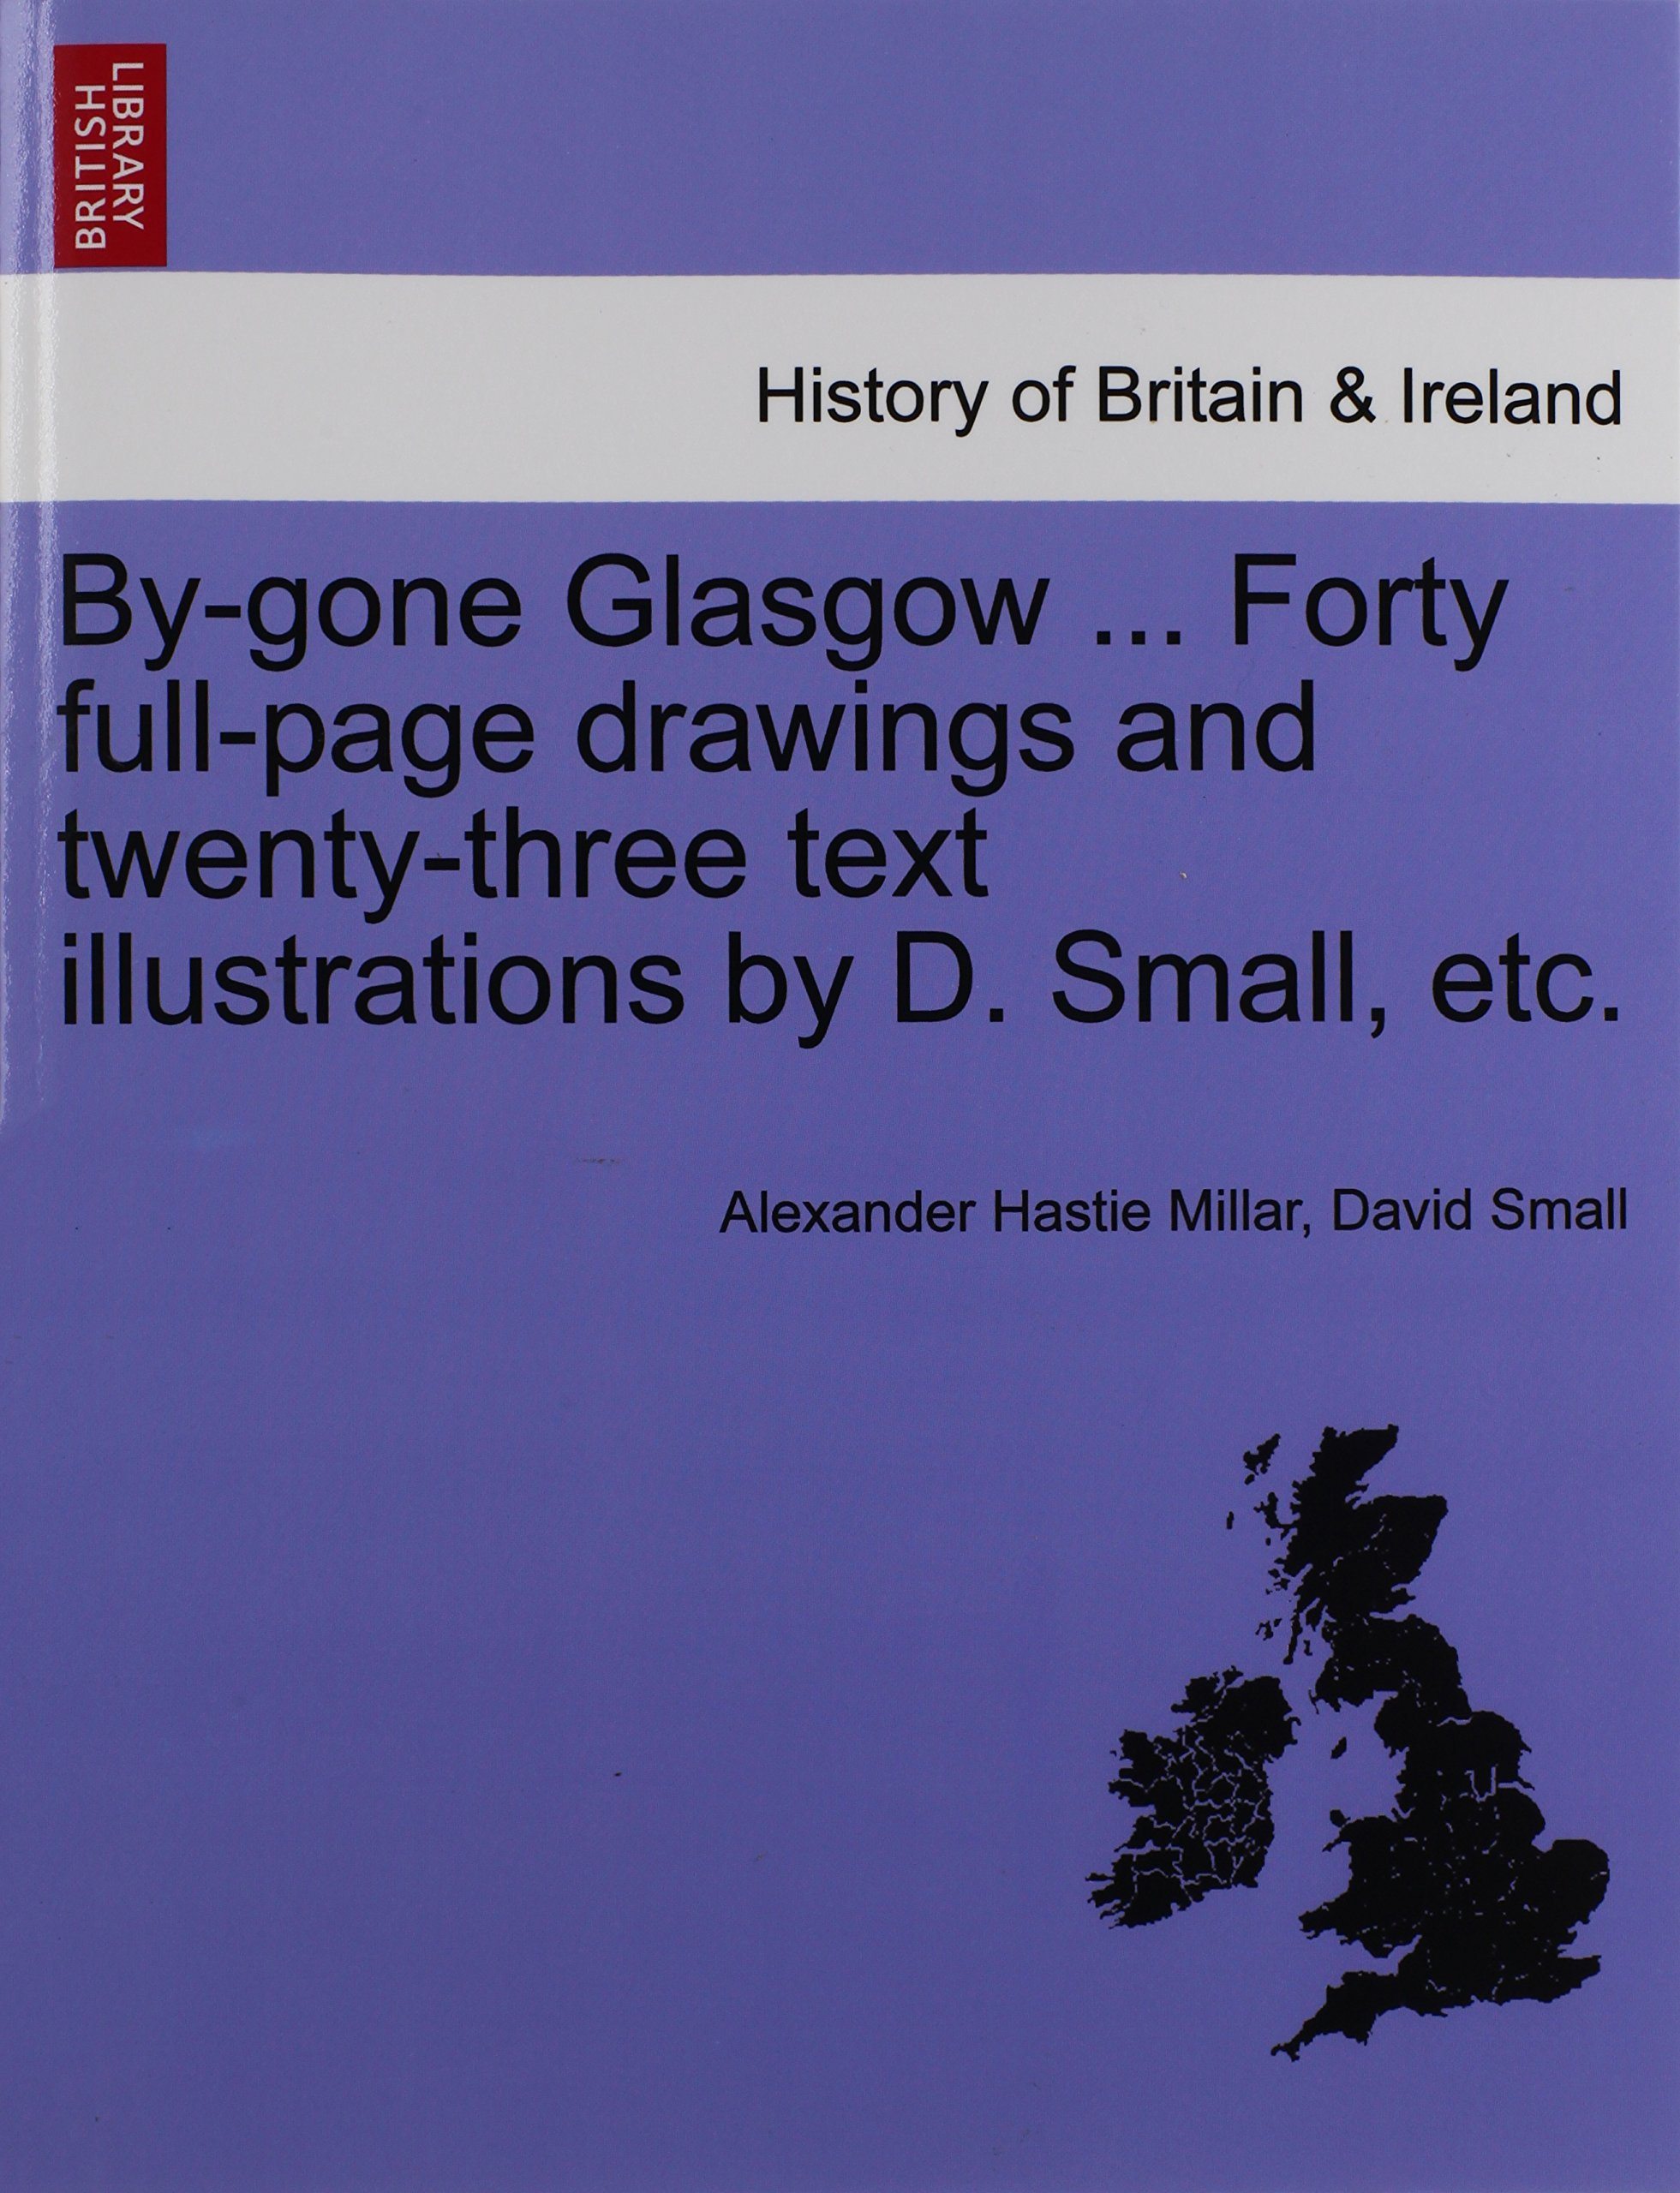 Read Online By-gone Glasgow ... Forty full-page drawings and twenty-three text illustrations by D. Small, etc. PDF